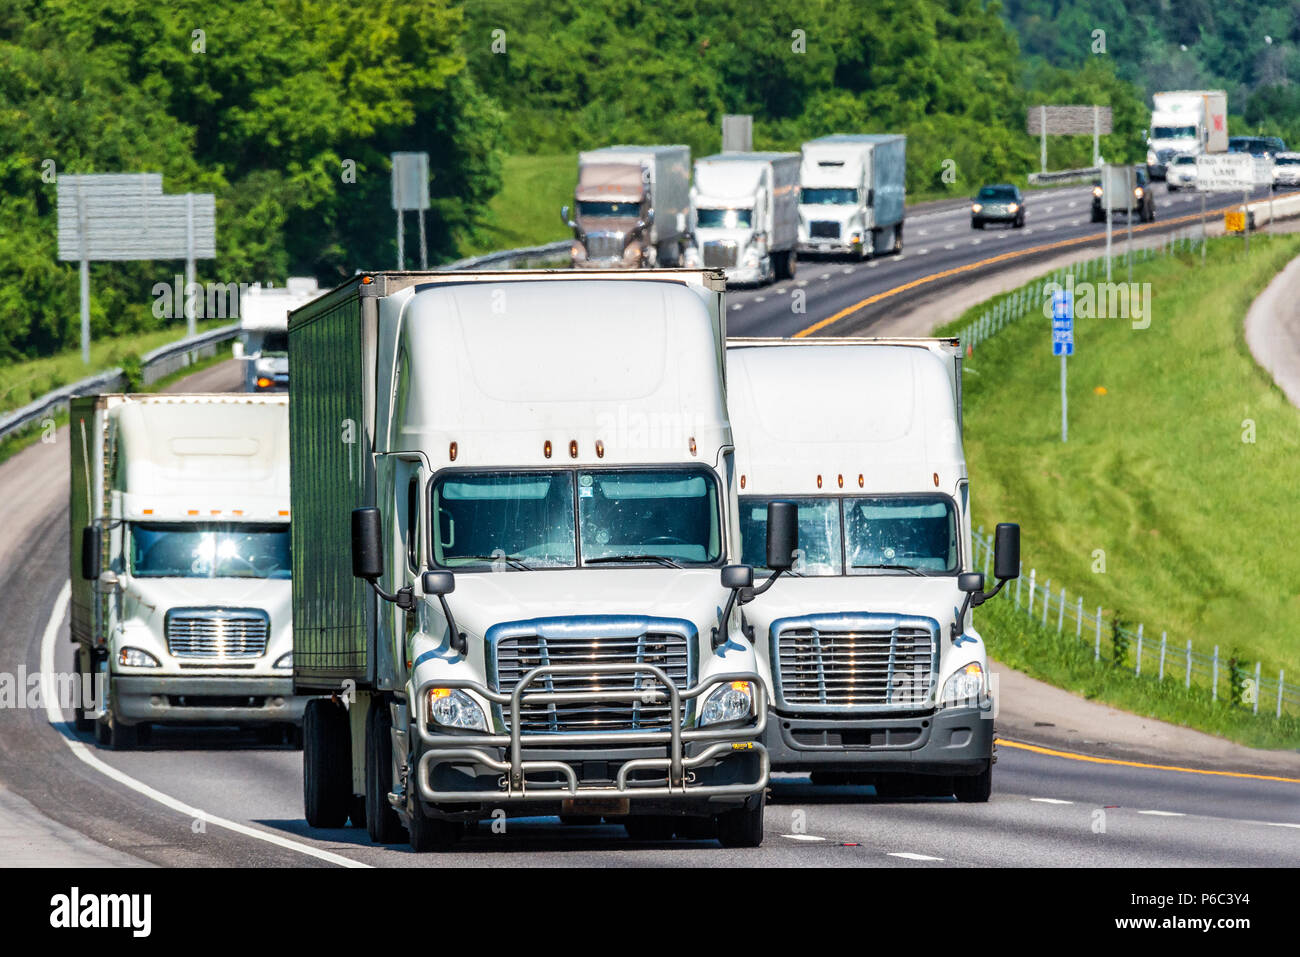 A constant line of heavy trucks move down a busy interstate.  Note: All logos and identifying marks have been removed from all vehicles.  Image was cr - Stock Image